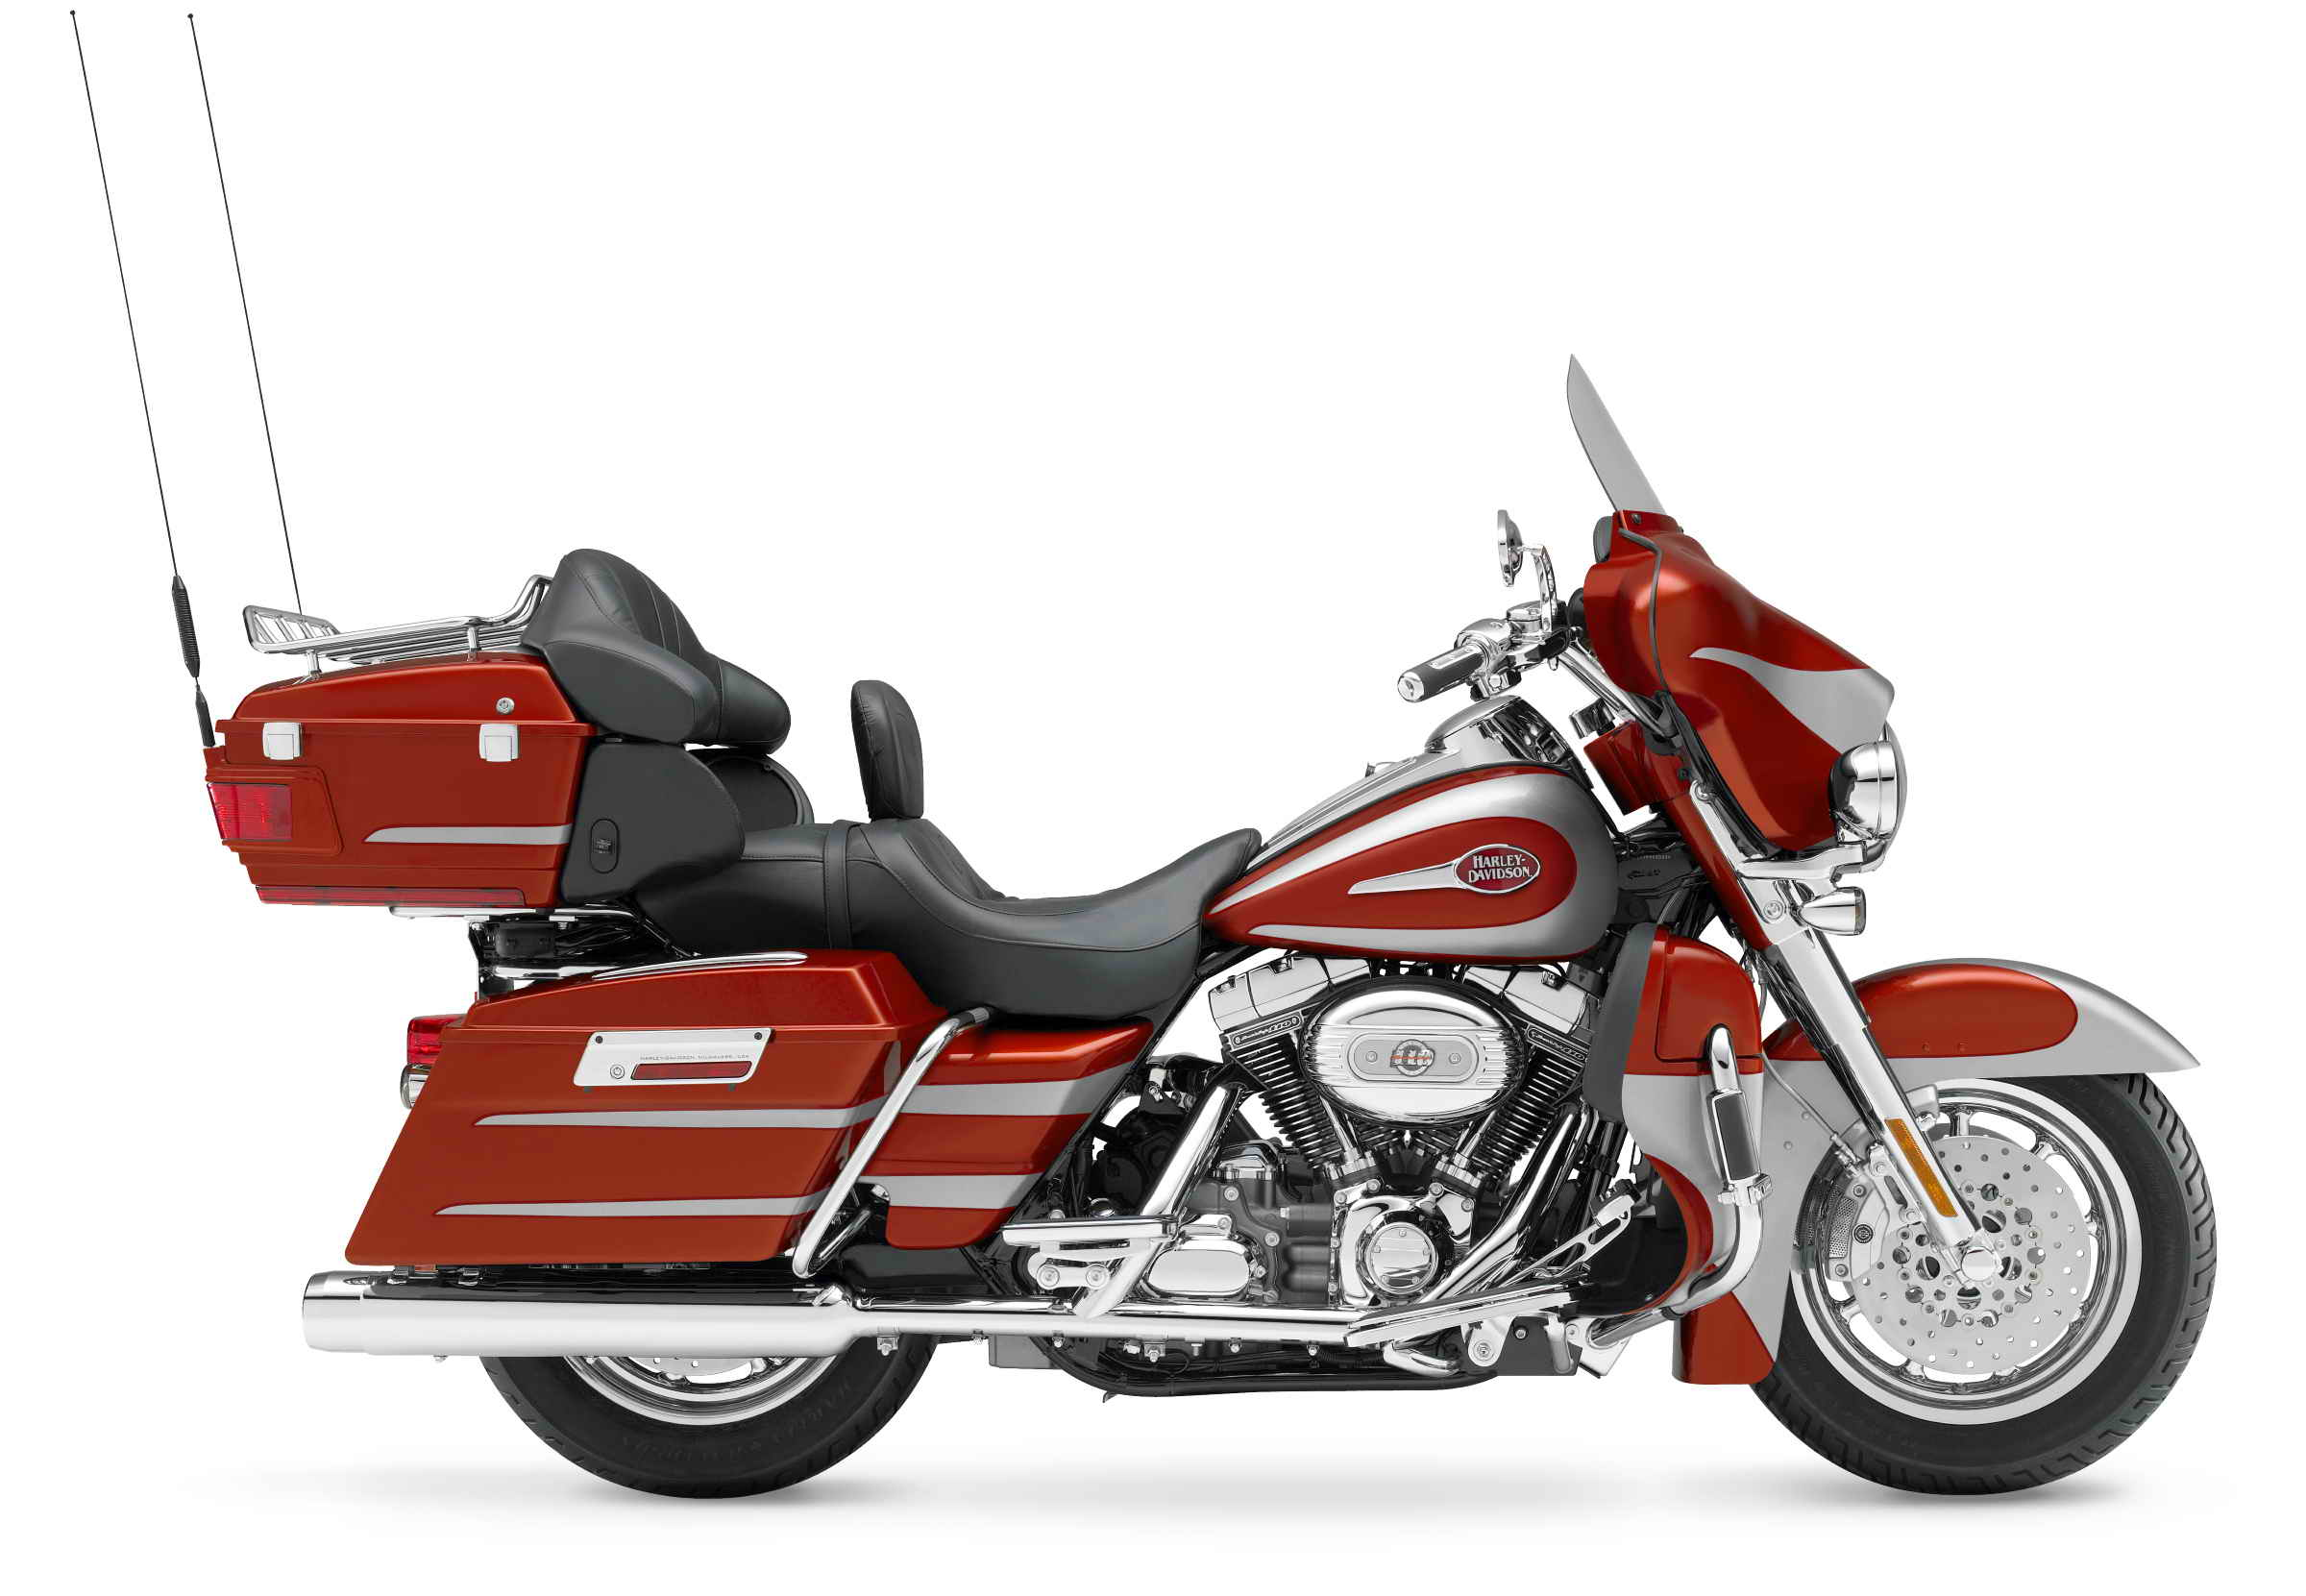 2008 Harley-Davidson FLHTCUSE3 Screamin' Eagle Ultra Classic Electra Glide  | Top Speed. »